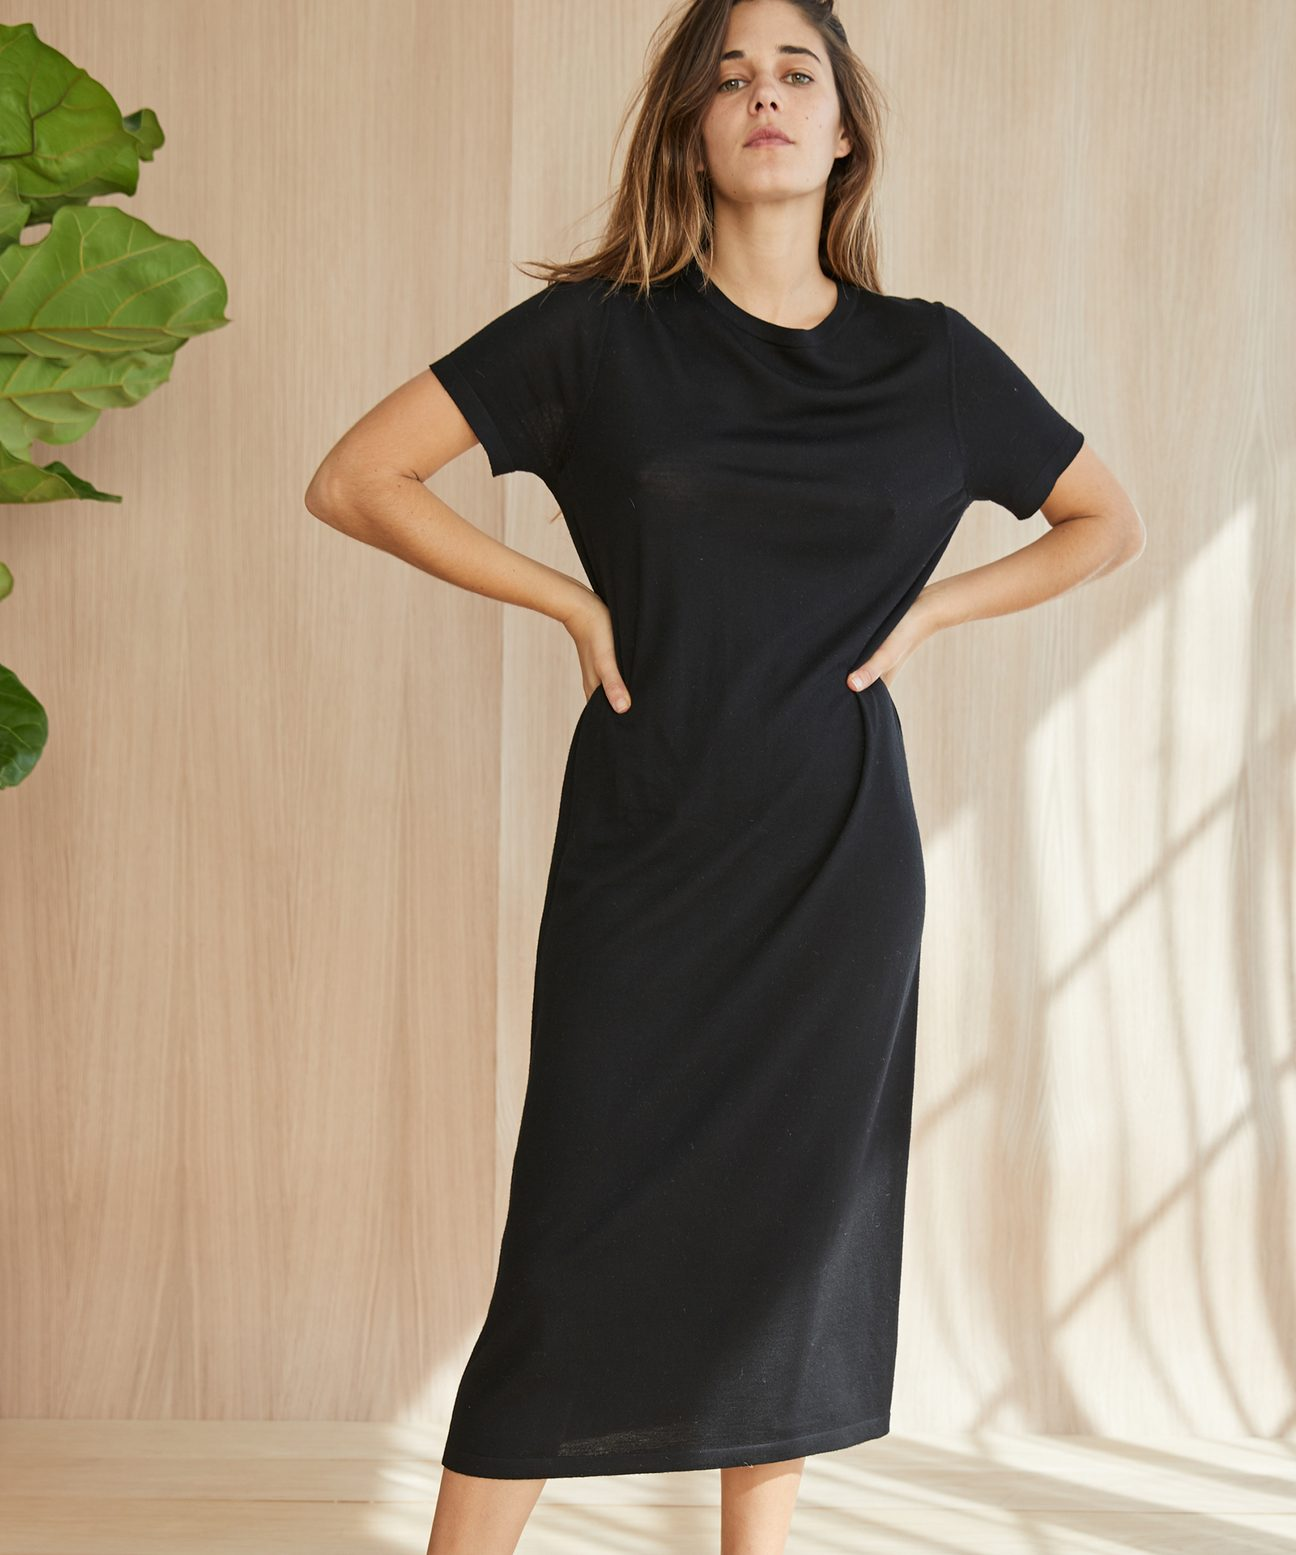 4cbda2aa03 Jenni Kayne Merino T Shirt Dress Black-1.jpg 1551750100